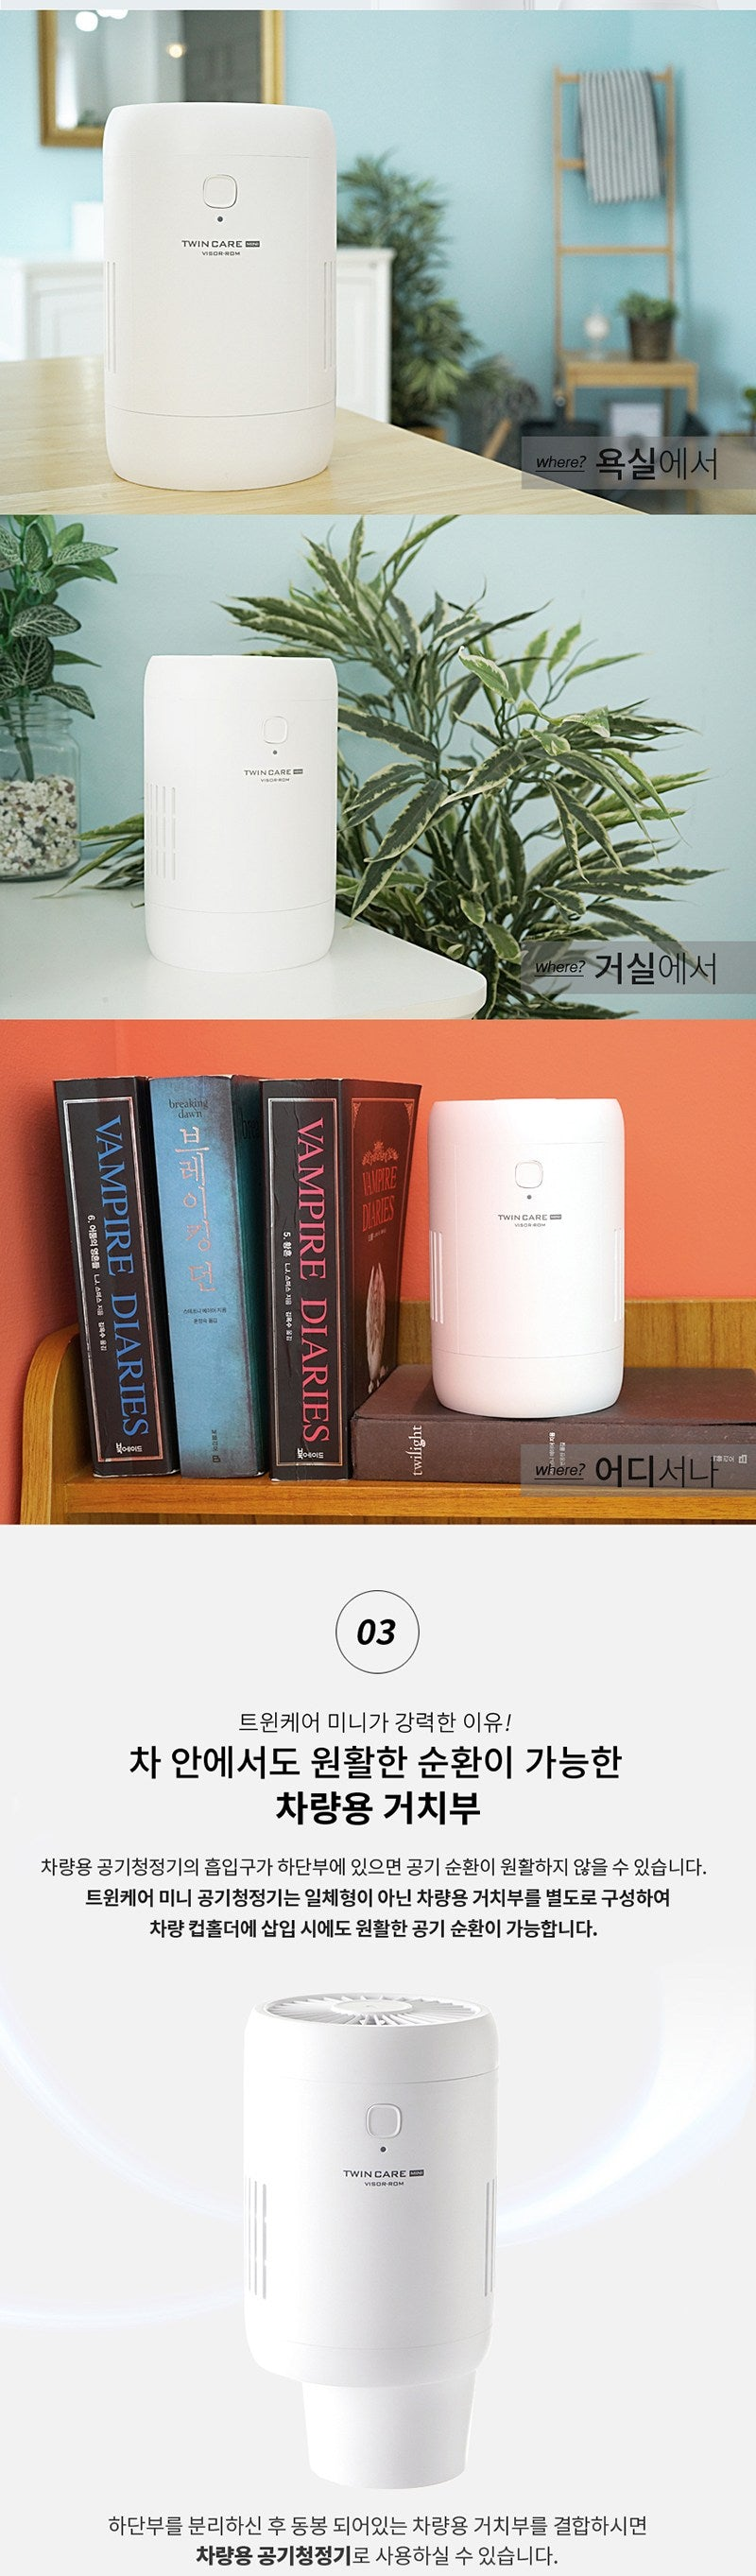 Twincare Air Purifier - Mini